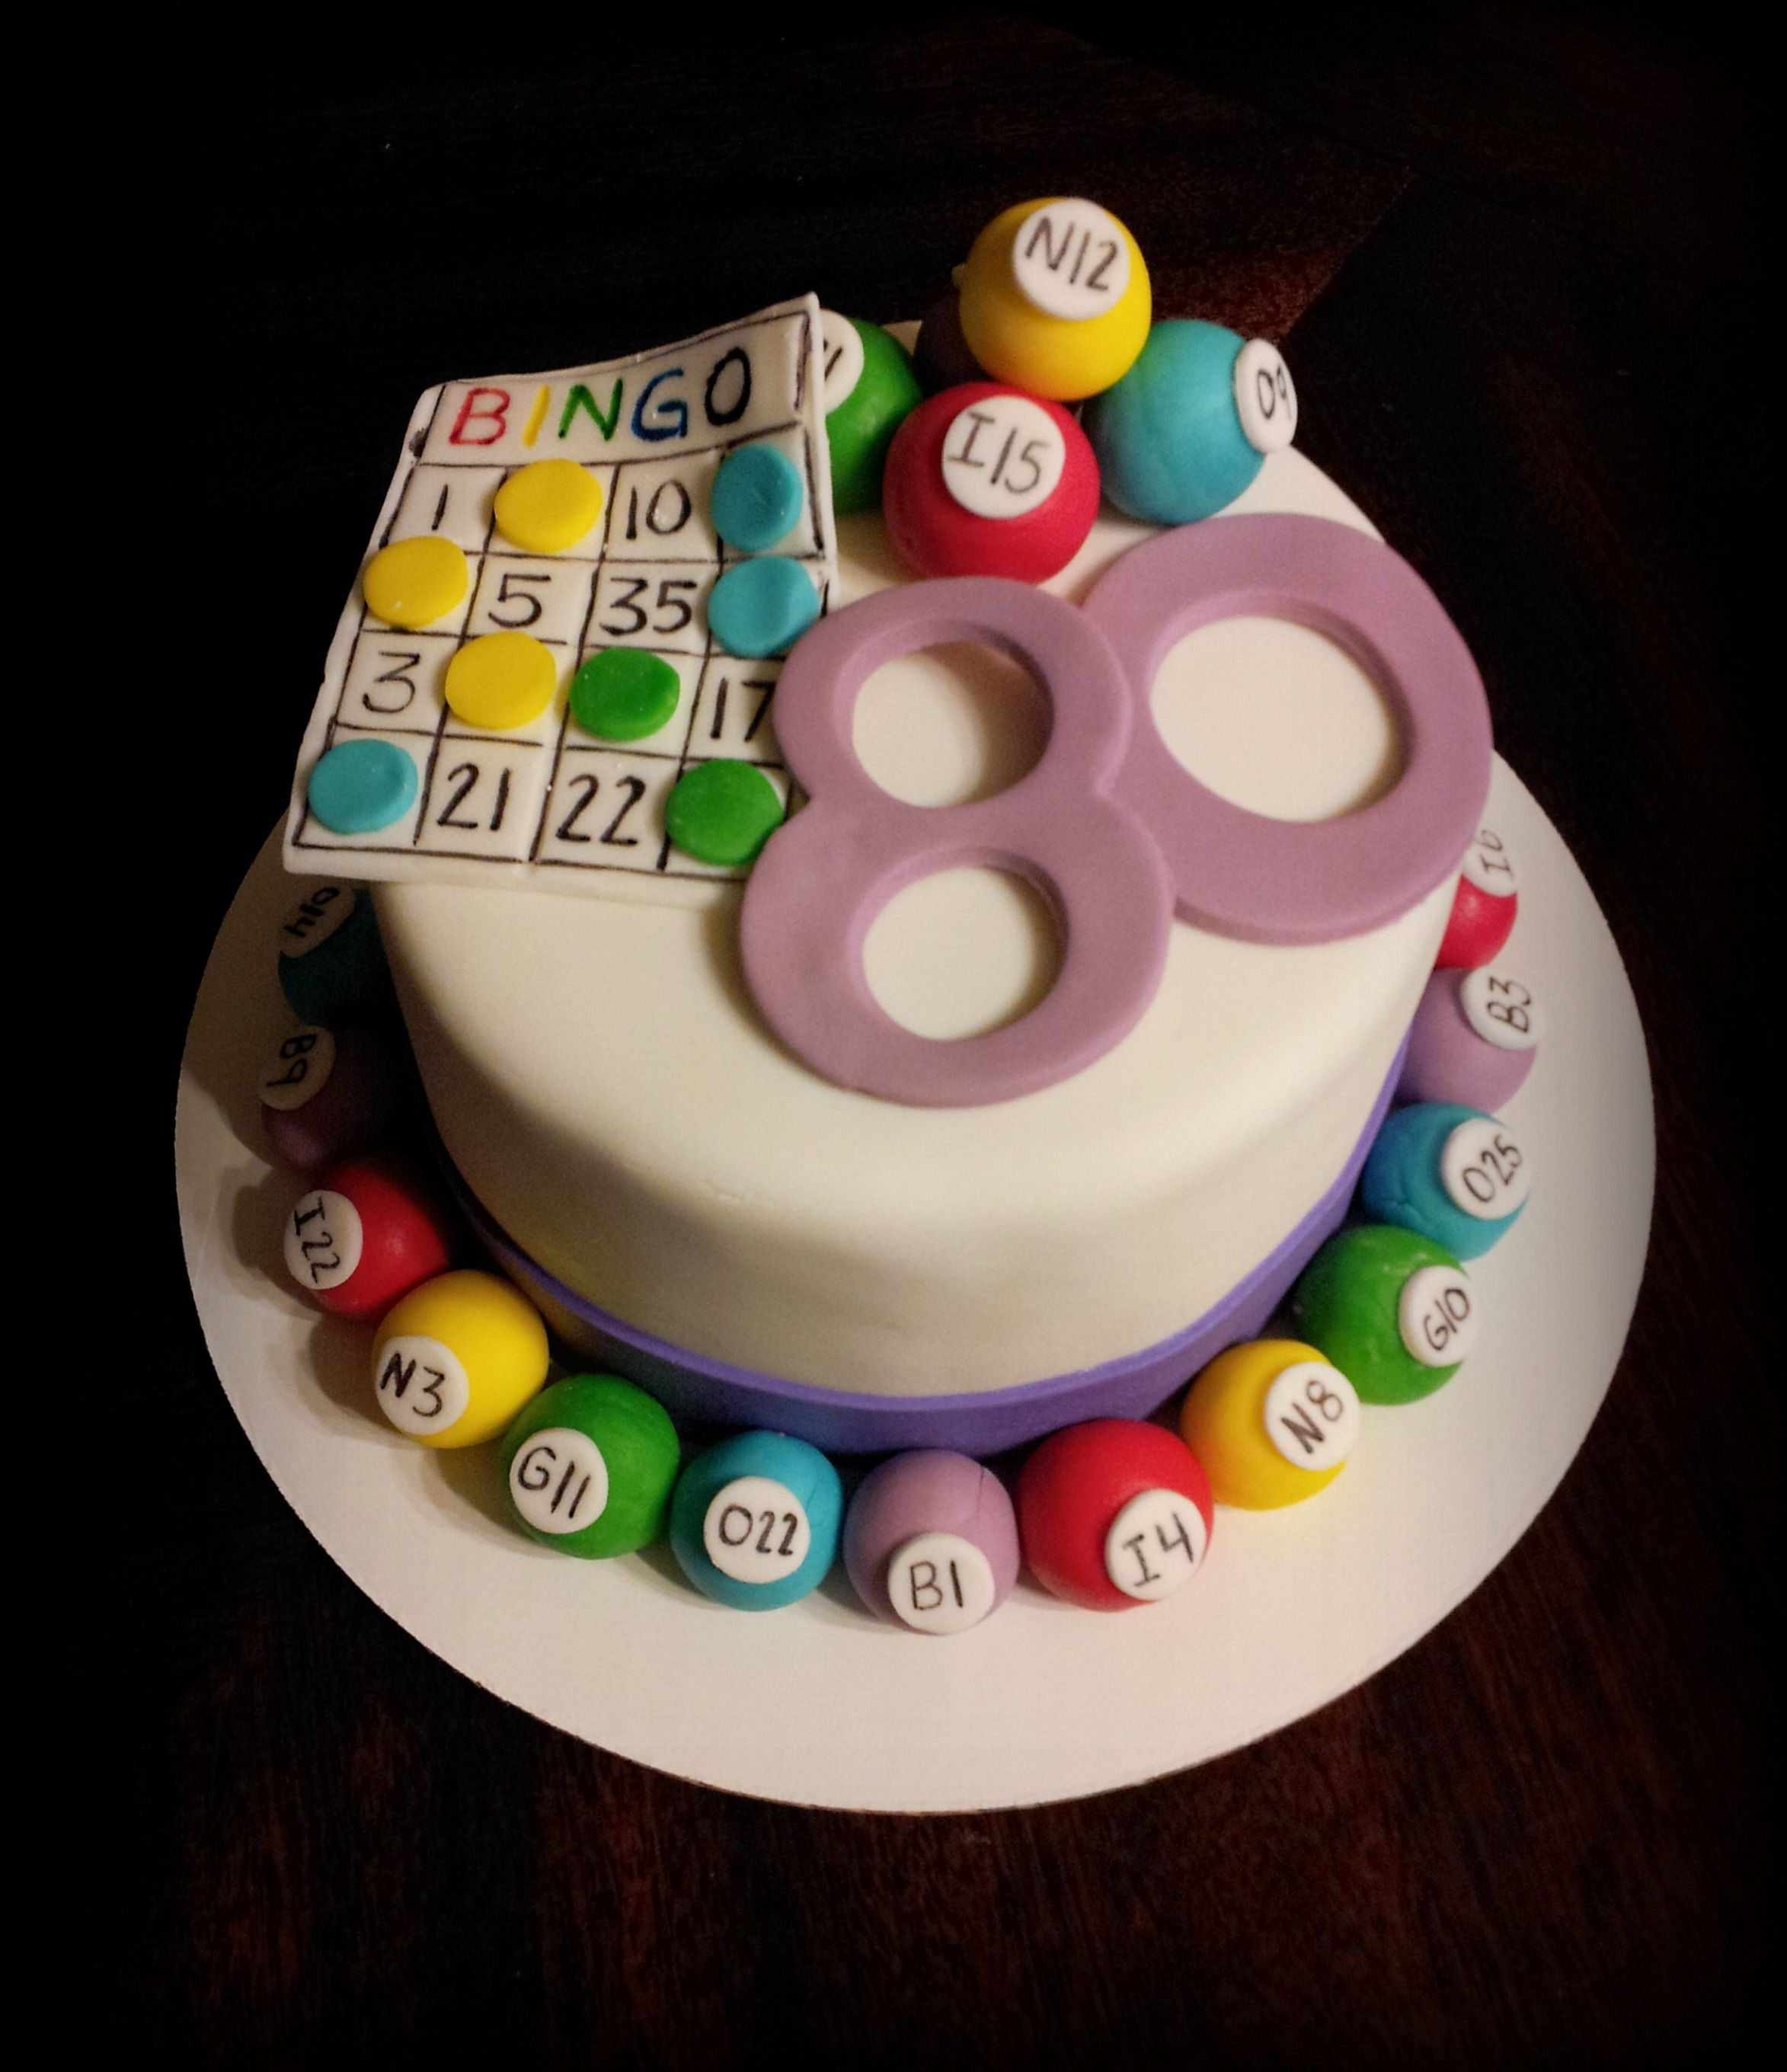 Casino Cakes - 30 Awesome Gambling Cakes To Die For